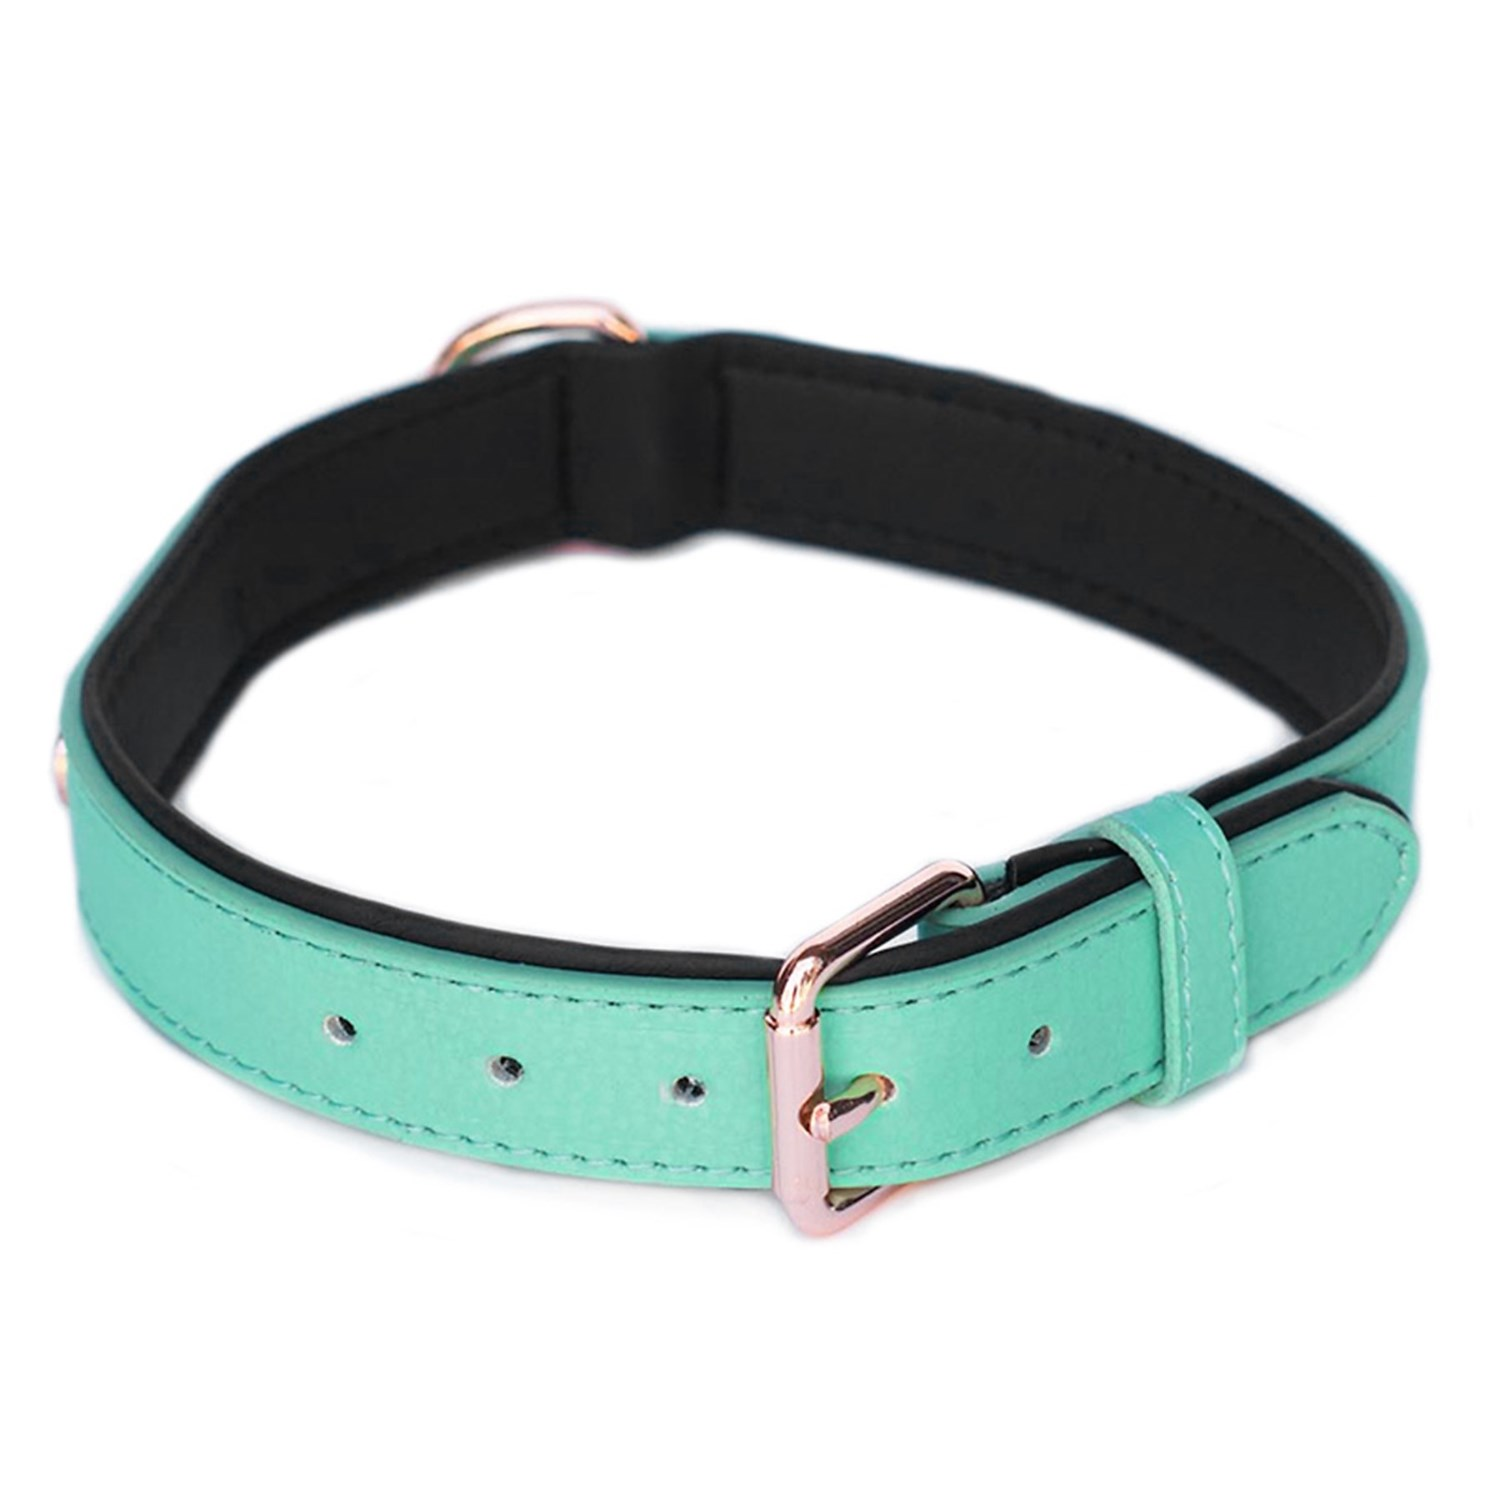 ZippyPaws Vivid Collection Dog Collar - Leather